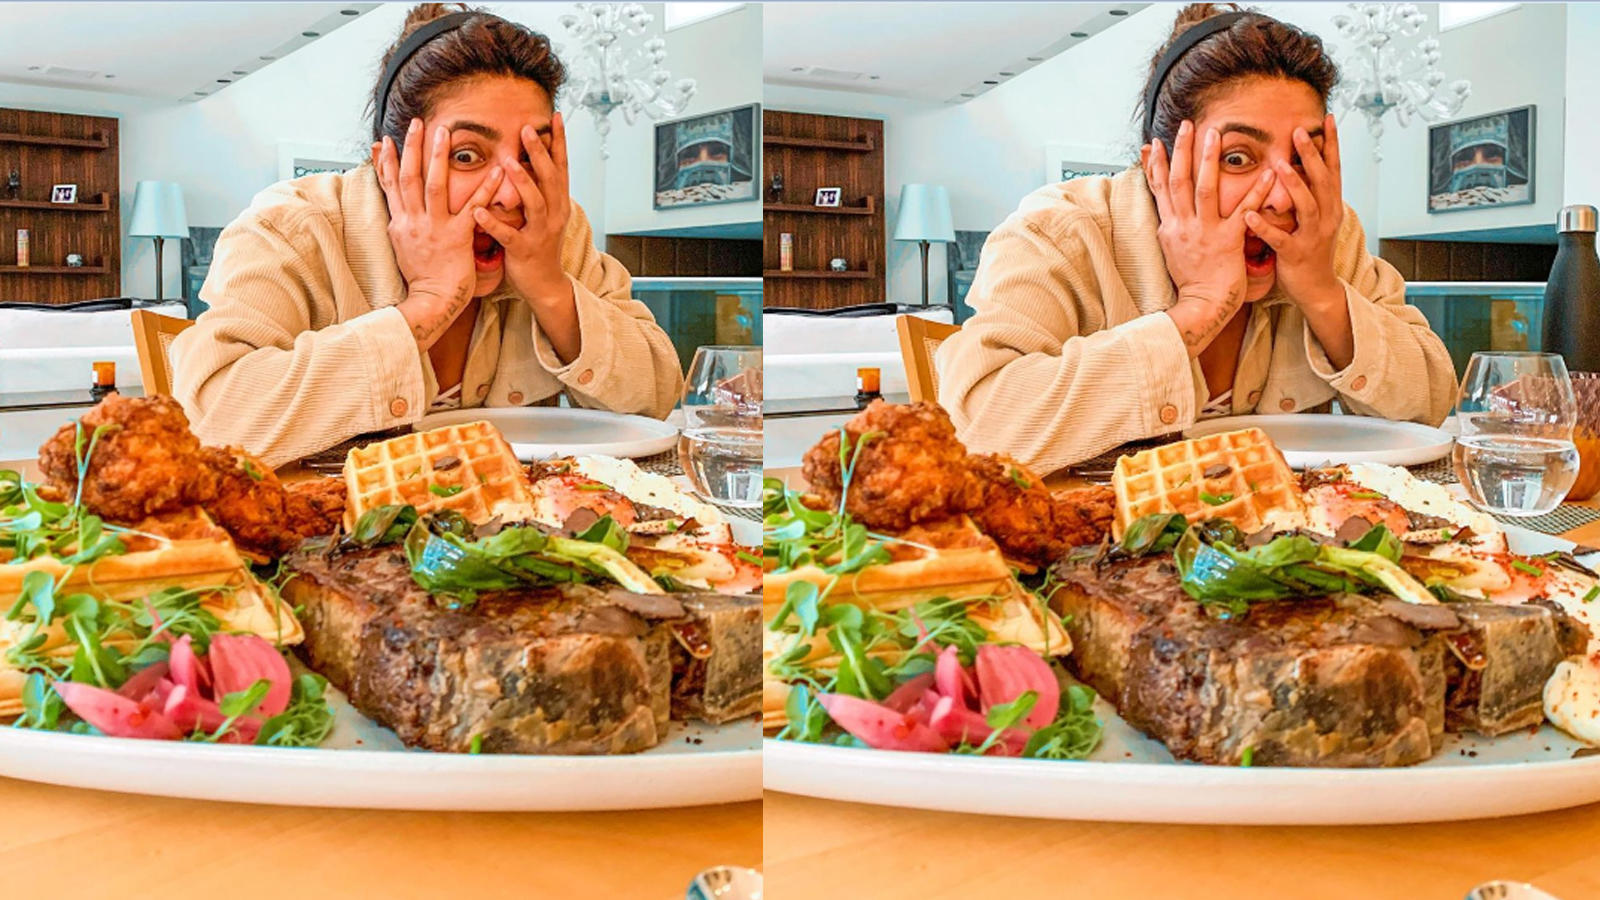 priyanka-chopra-jonas-asks-what-do-i-do-with-this-as-she-is-faced-with-the-impossible-task-of-finishing-a-scrumptious-spread-of-yummy-food